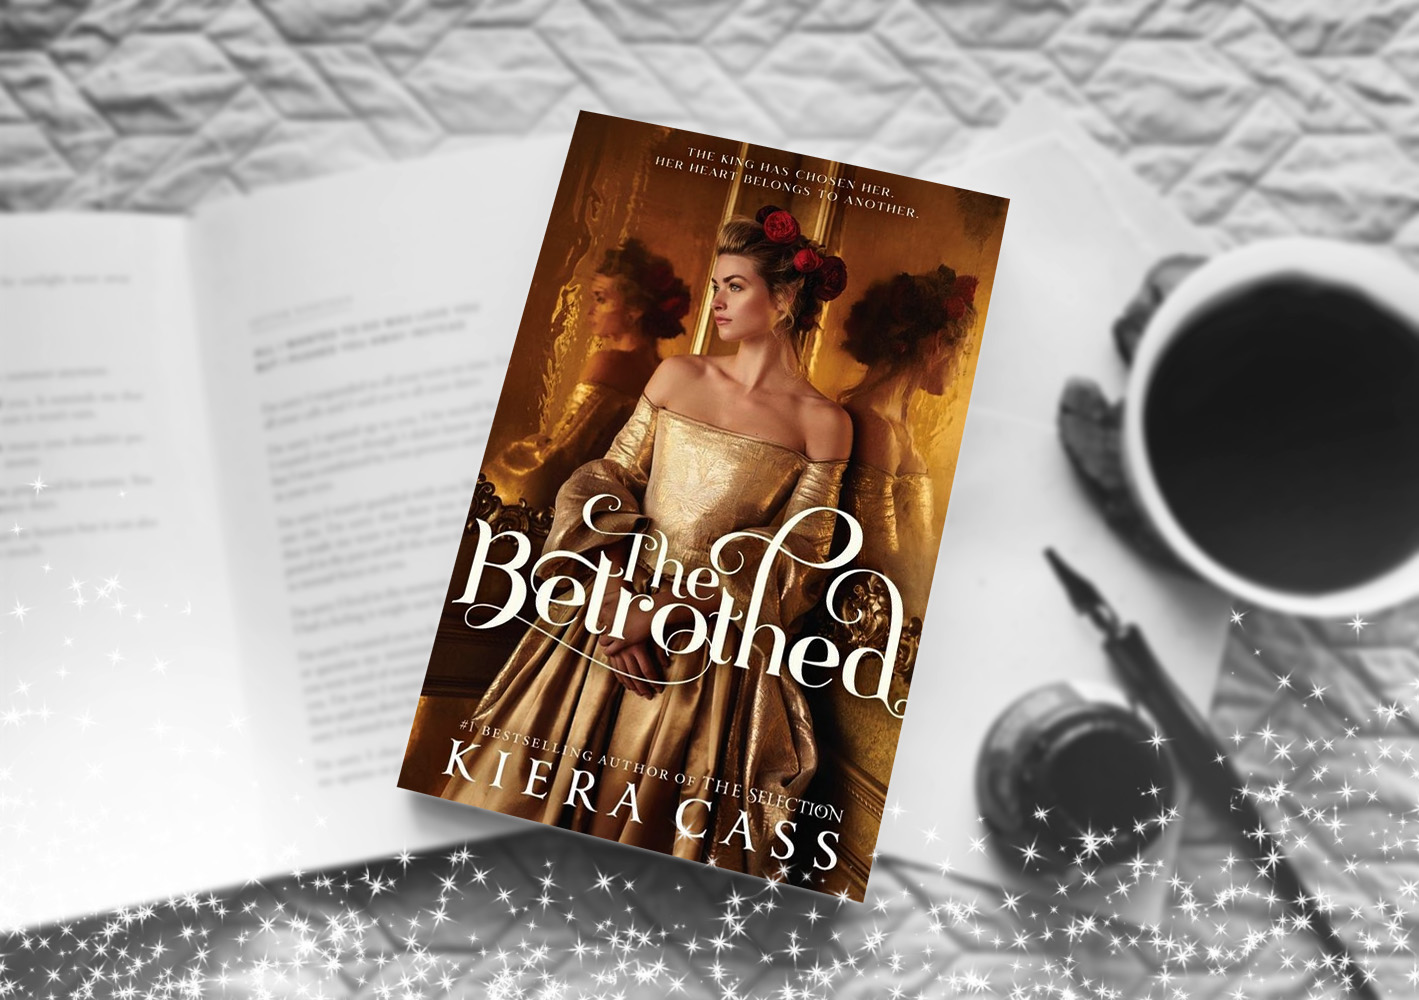 the betrothed Kiera Cass